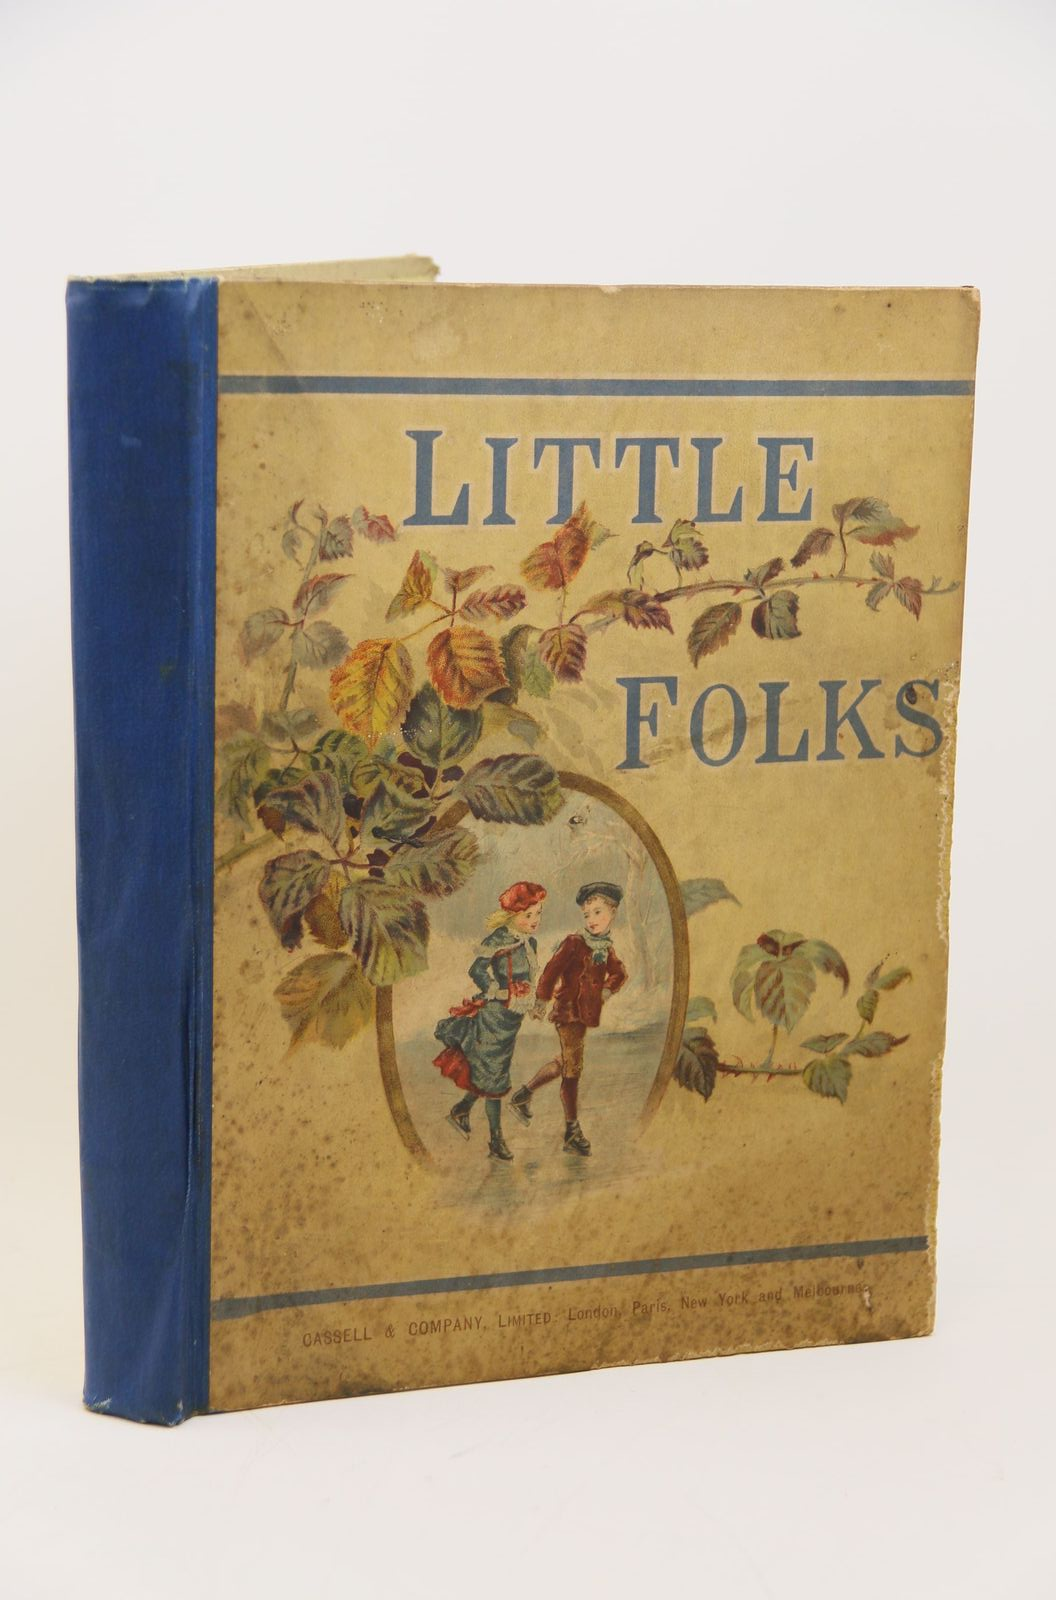 Photo of LITTLE FOLKS 1888 written by Gift, Theo et al, illustrated by Wain, Louis Crane, Walter Copping, Harold et al., published by Cassell & Company Limited (STOCK CODE: 1317887)  for sale by Stella & Rose's Books